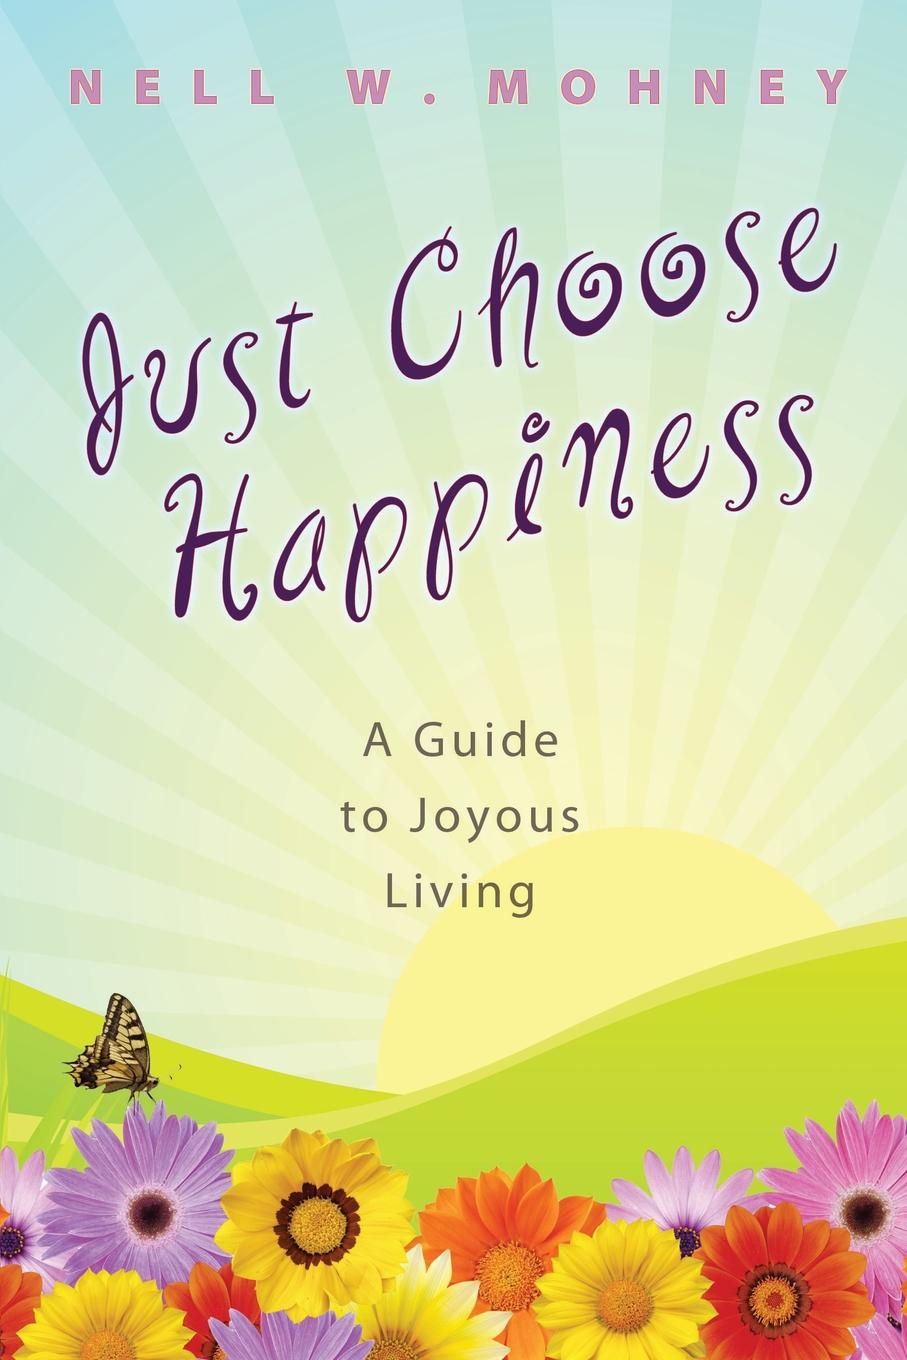 Nell W. Mohney Just Choose Happiness. A Guide to Joyous Living